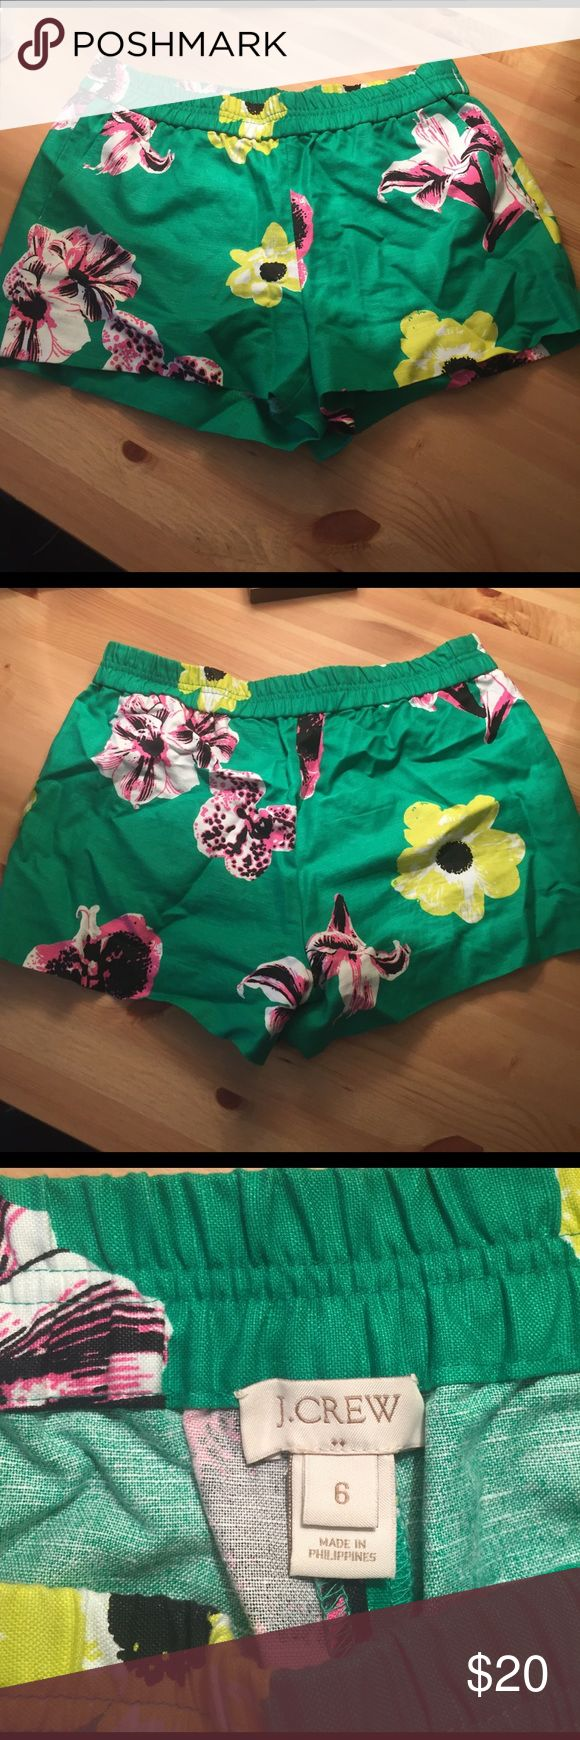 J Crew Women's Floral Shorts Size 6 I love these J Crew floral shorts. They have an elastic banded waist are are super comfy. They match really well with a black t-shirt for a night out in the summer time. They have two front pockets and have never been worn! NO TRADES PLEASE. Size 6 and true to size. J. Crew Shorts